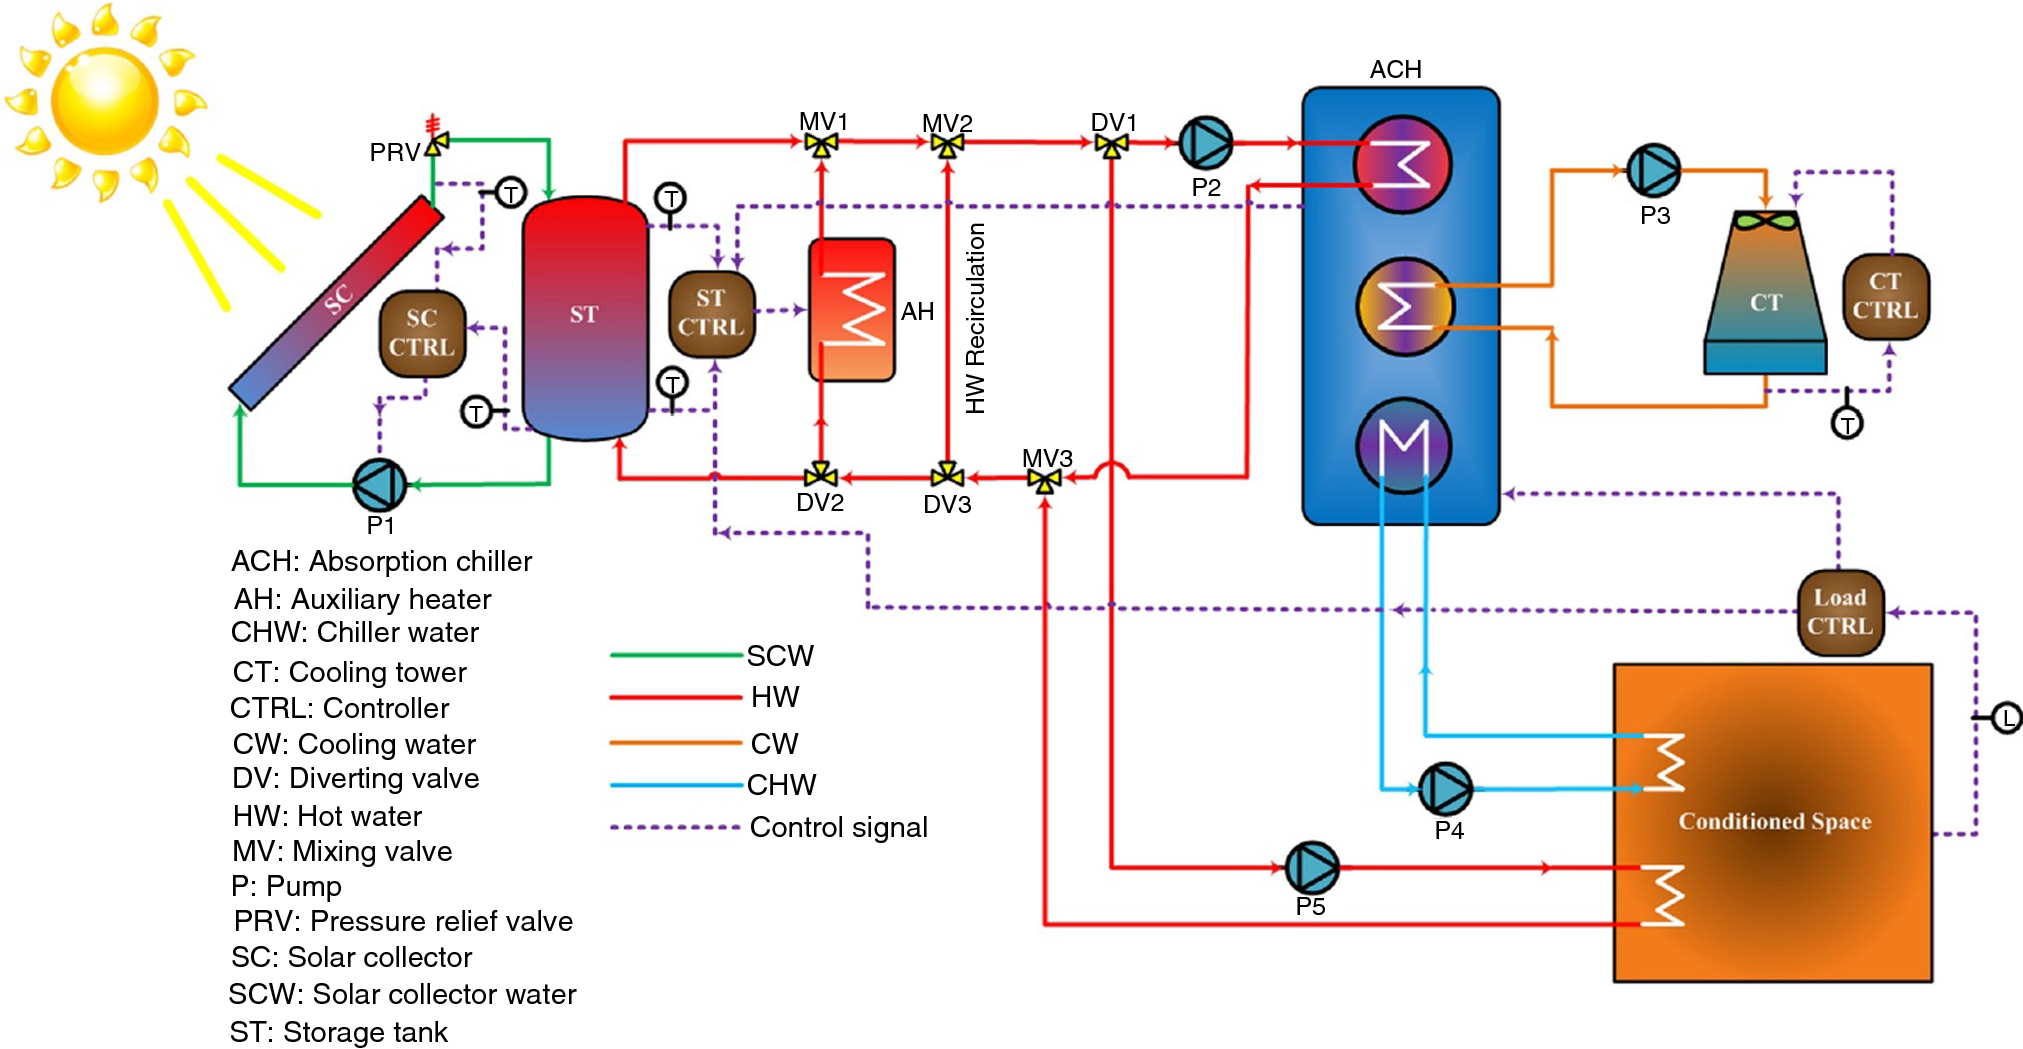 A Review Of Solar Absorption Cooling Systems Combined With Various How Ejector Pumps Work In Addition Push Button Switch Wiring Moreover Open Image New Window